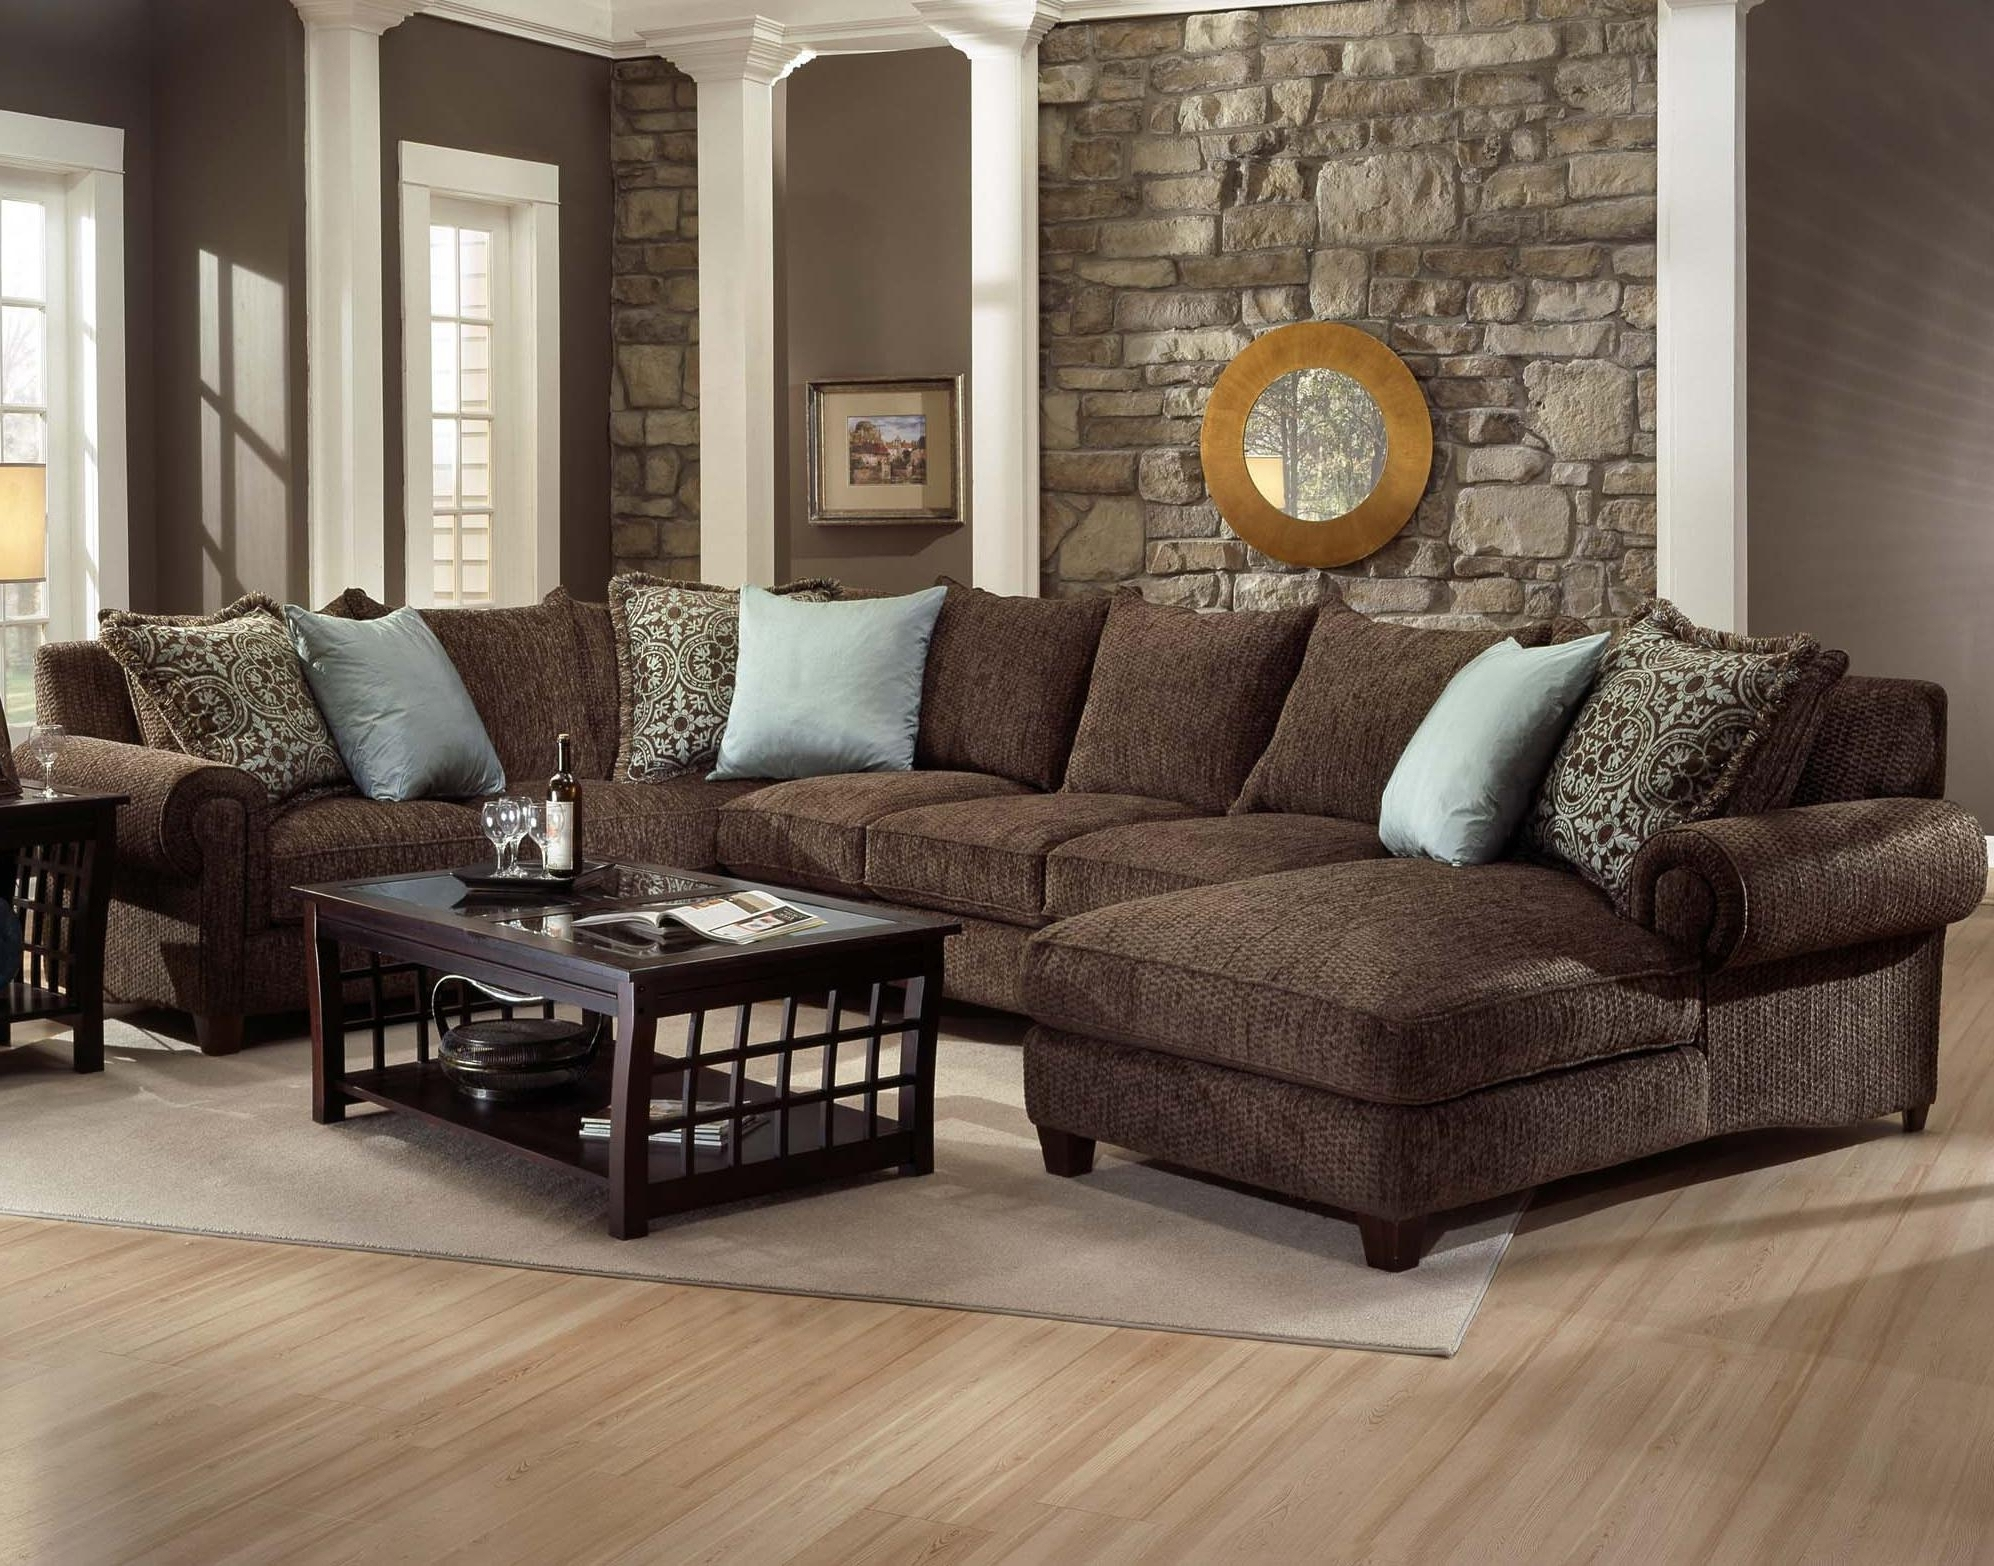 Preferred Jcpenney Sectional Sofas In 73 Wonderful Jcpenney Sectional Sofa Home Design (View 10 of 20)